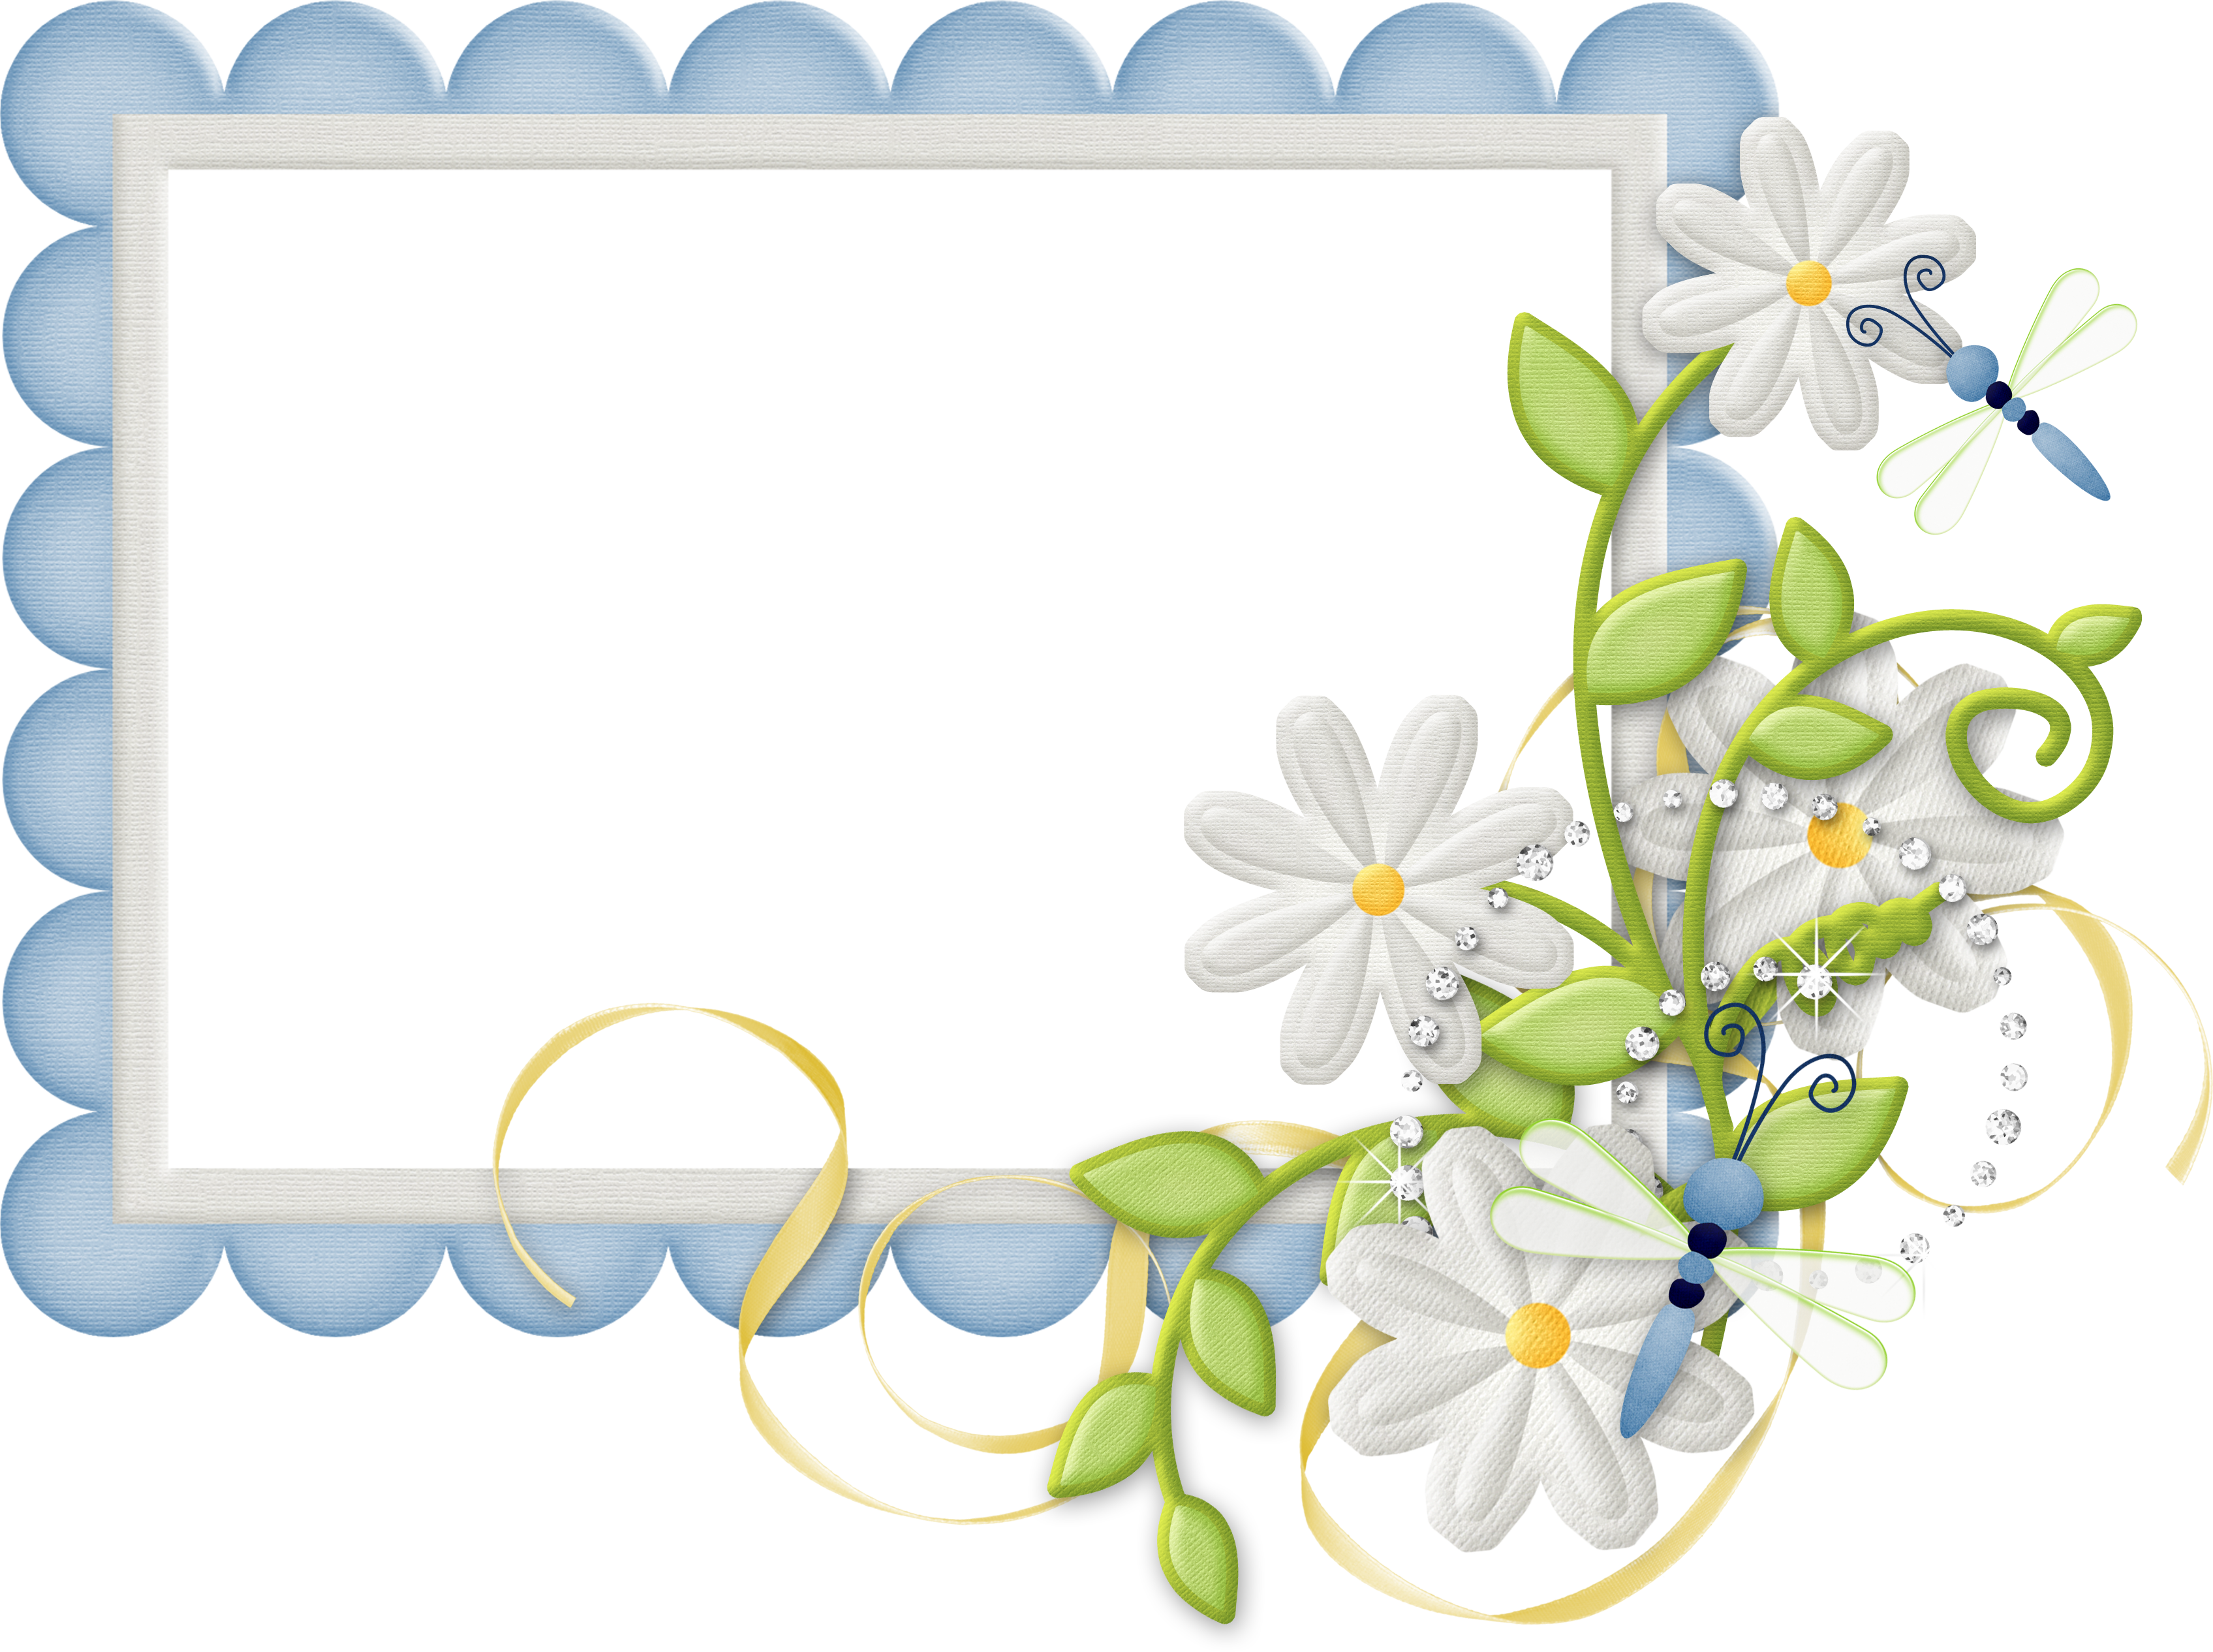 Cute Large Design Blue Transparent Frame with Daisies.